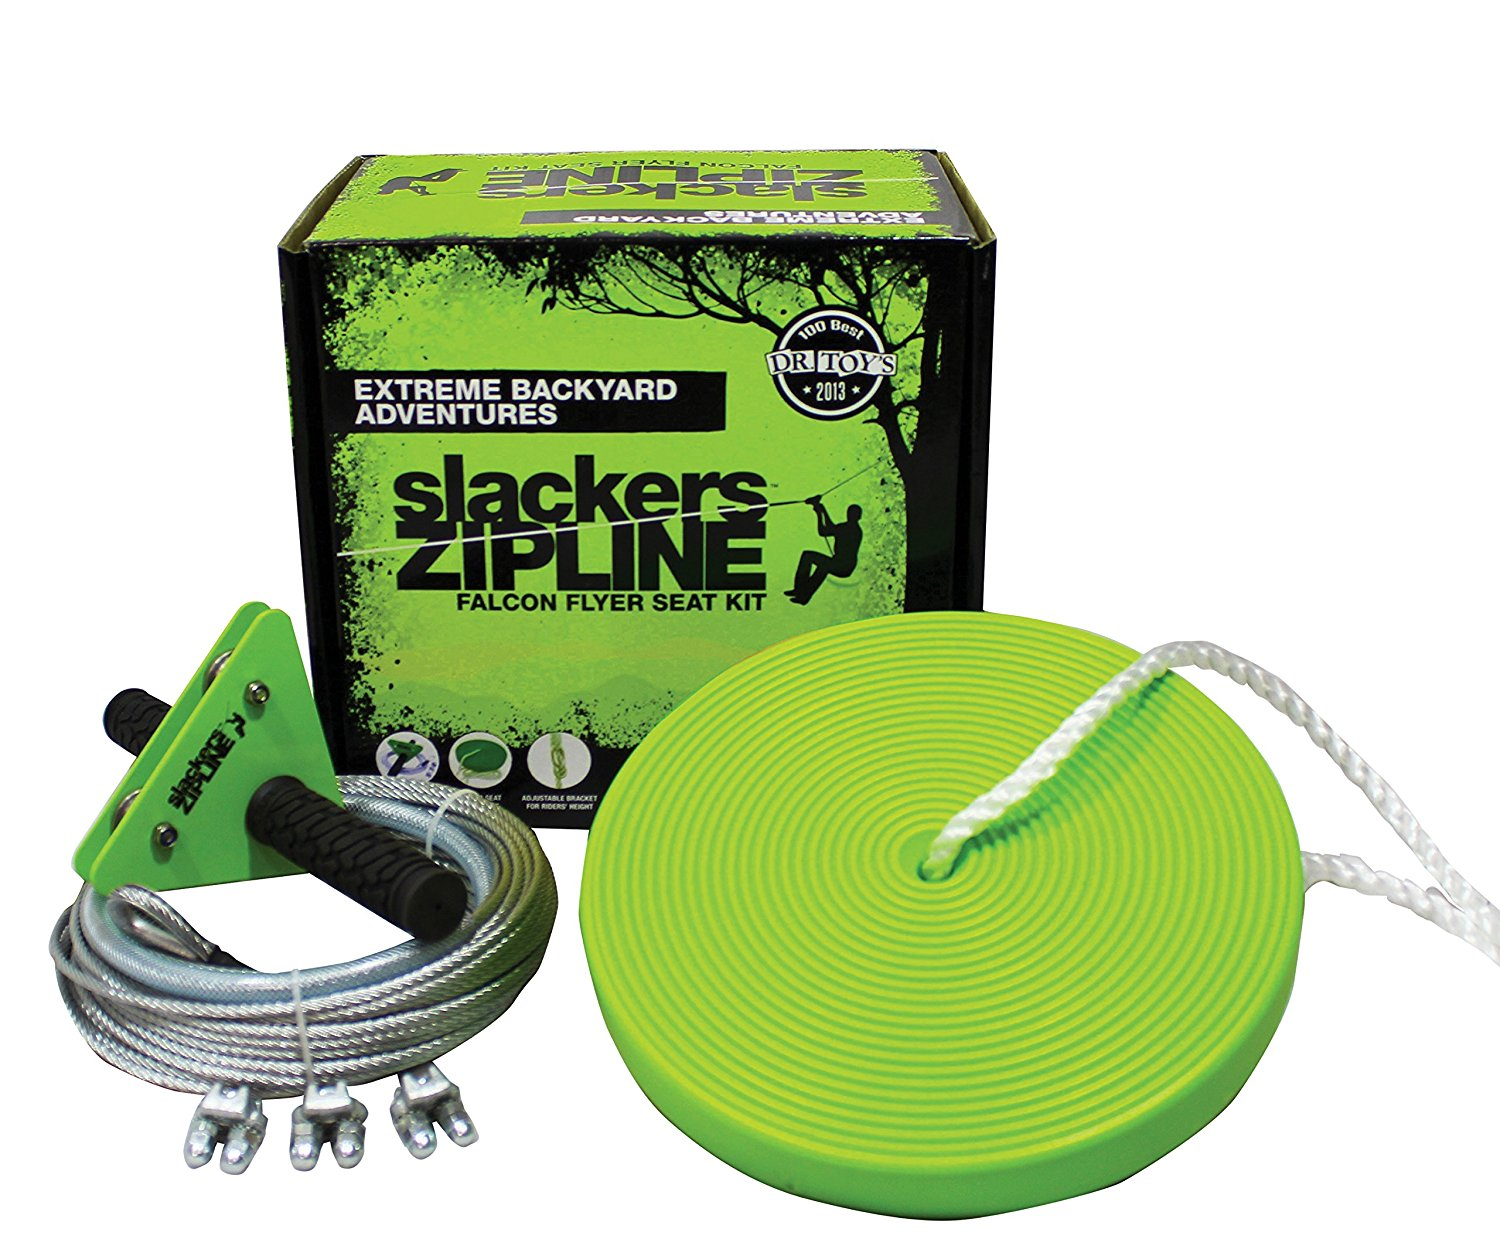 8. Slackers 40' Zipline Falcon Series Kit